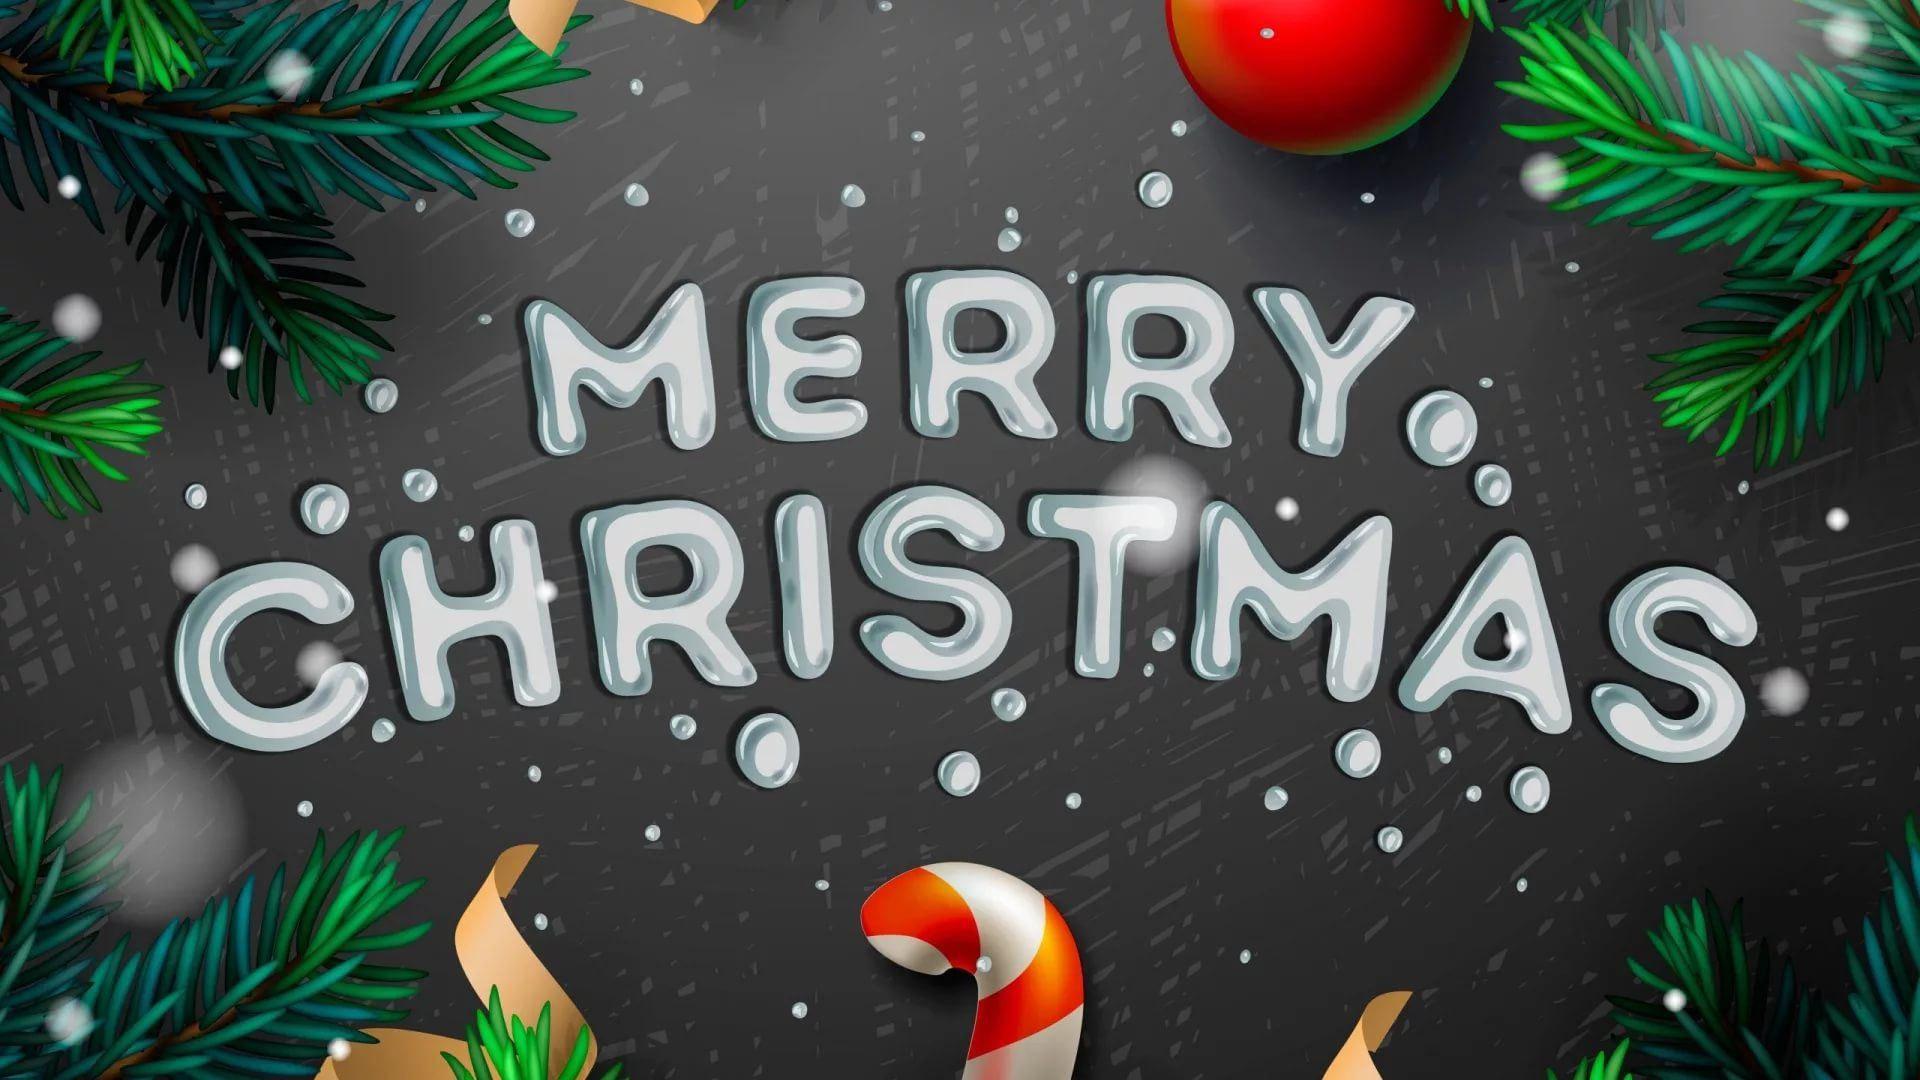 Merry Christmas wallpaper image